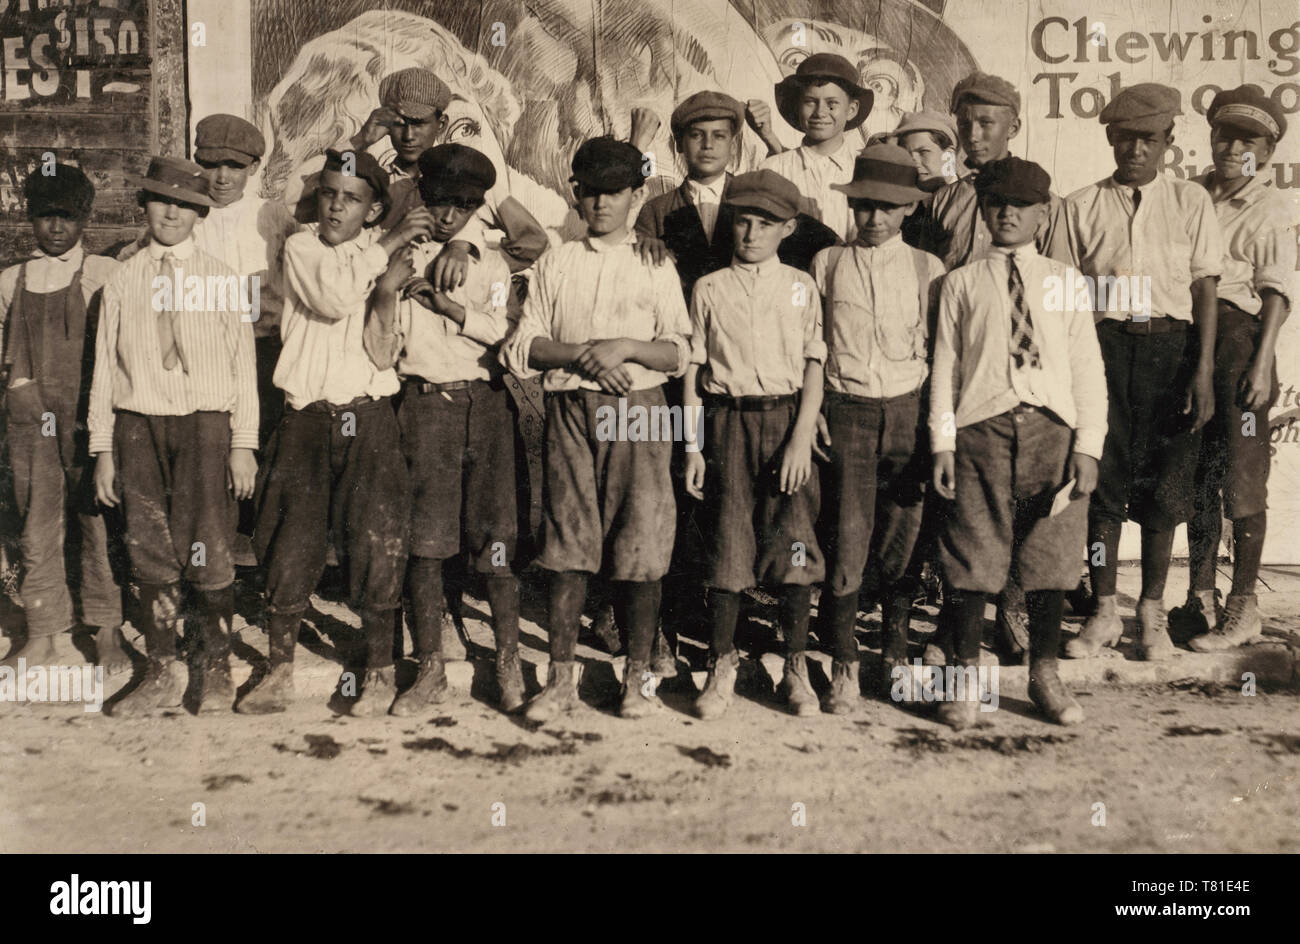 A few of the San Antonio messengers. See Hine report on messenger service of Texas. Edgar Barnes is one of the smallest in front row. The messengers and their contact with the Red Light districts, in most of the large cities of Texas, is one of the worst phases of child labor in the state. Location: San Antonio, Texas. 1913 - Stock Image